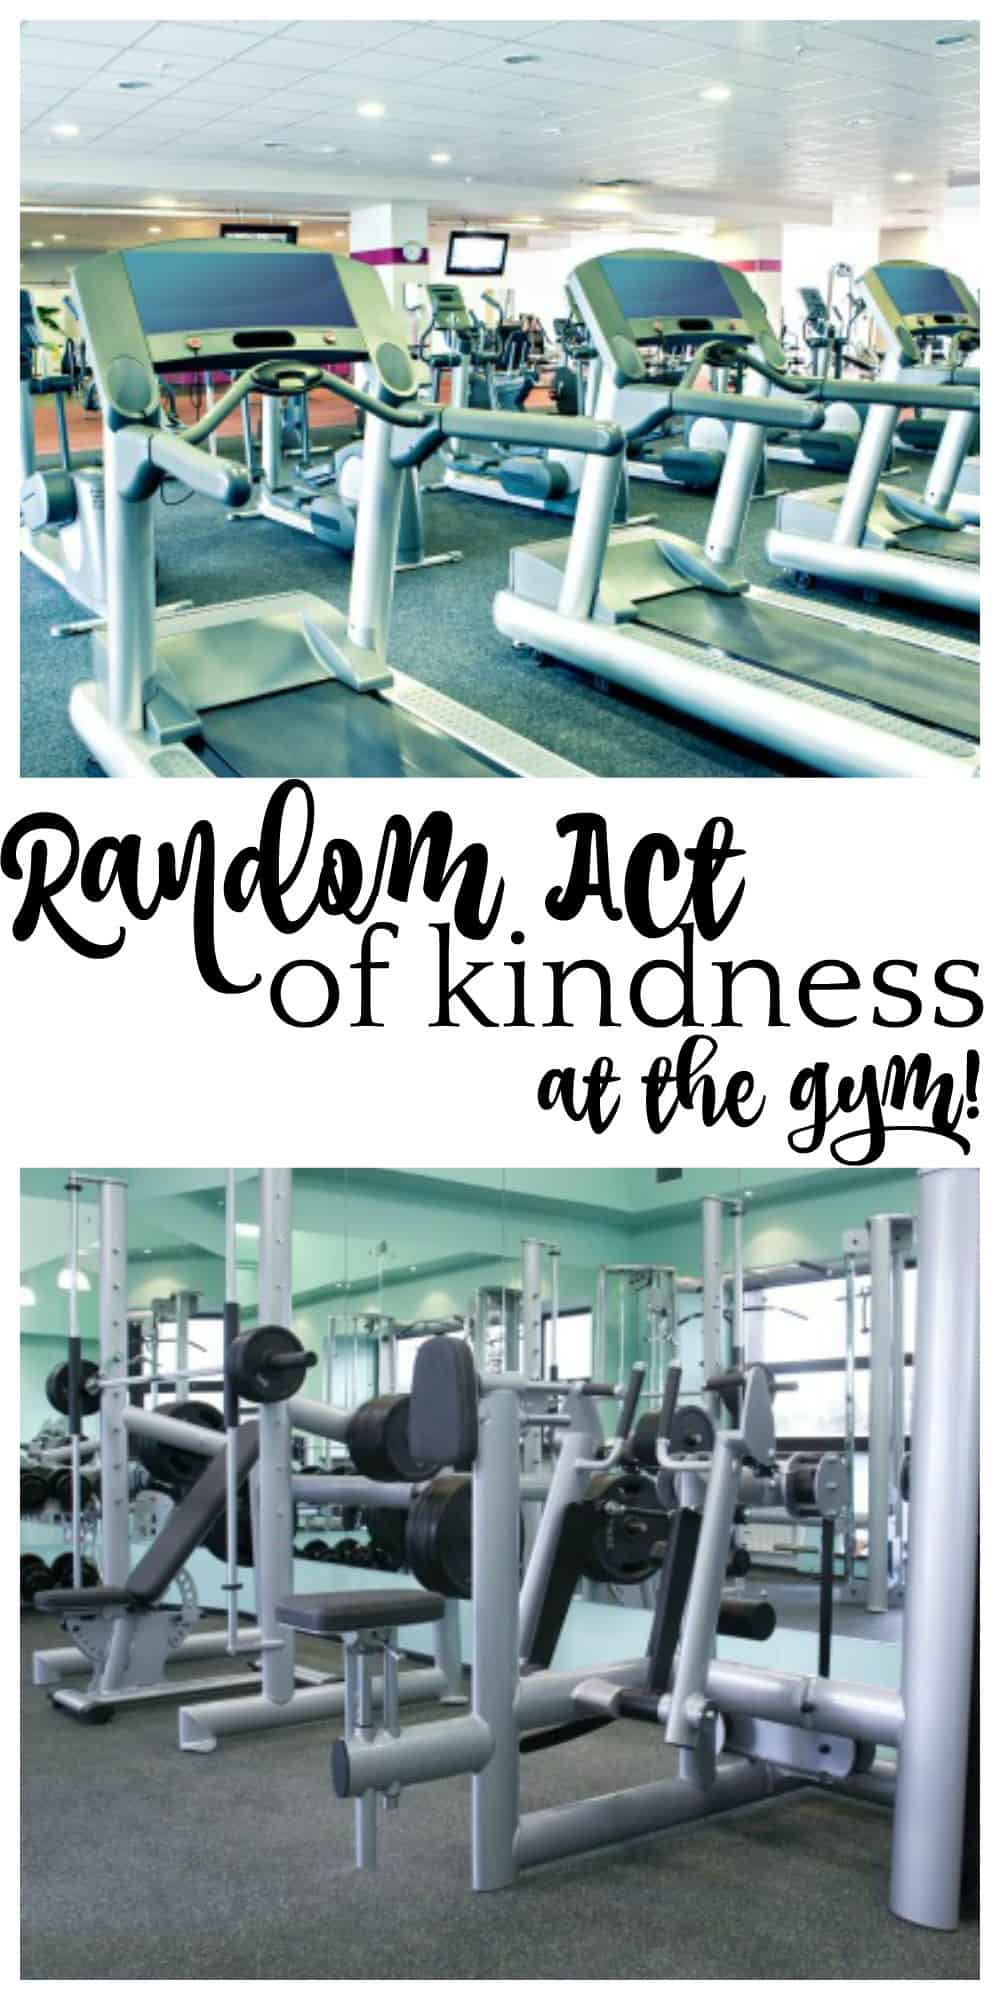 Make someone's day with a random act of kindness at the gym. Grab a free printable gift tag and brighten the day of someone who has just worked out. #randomactsofkindness #kindness #gym #workout via @wondermomwannab